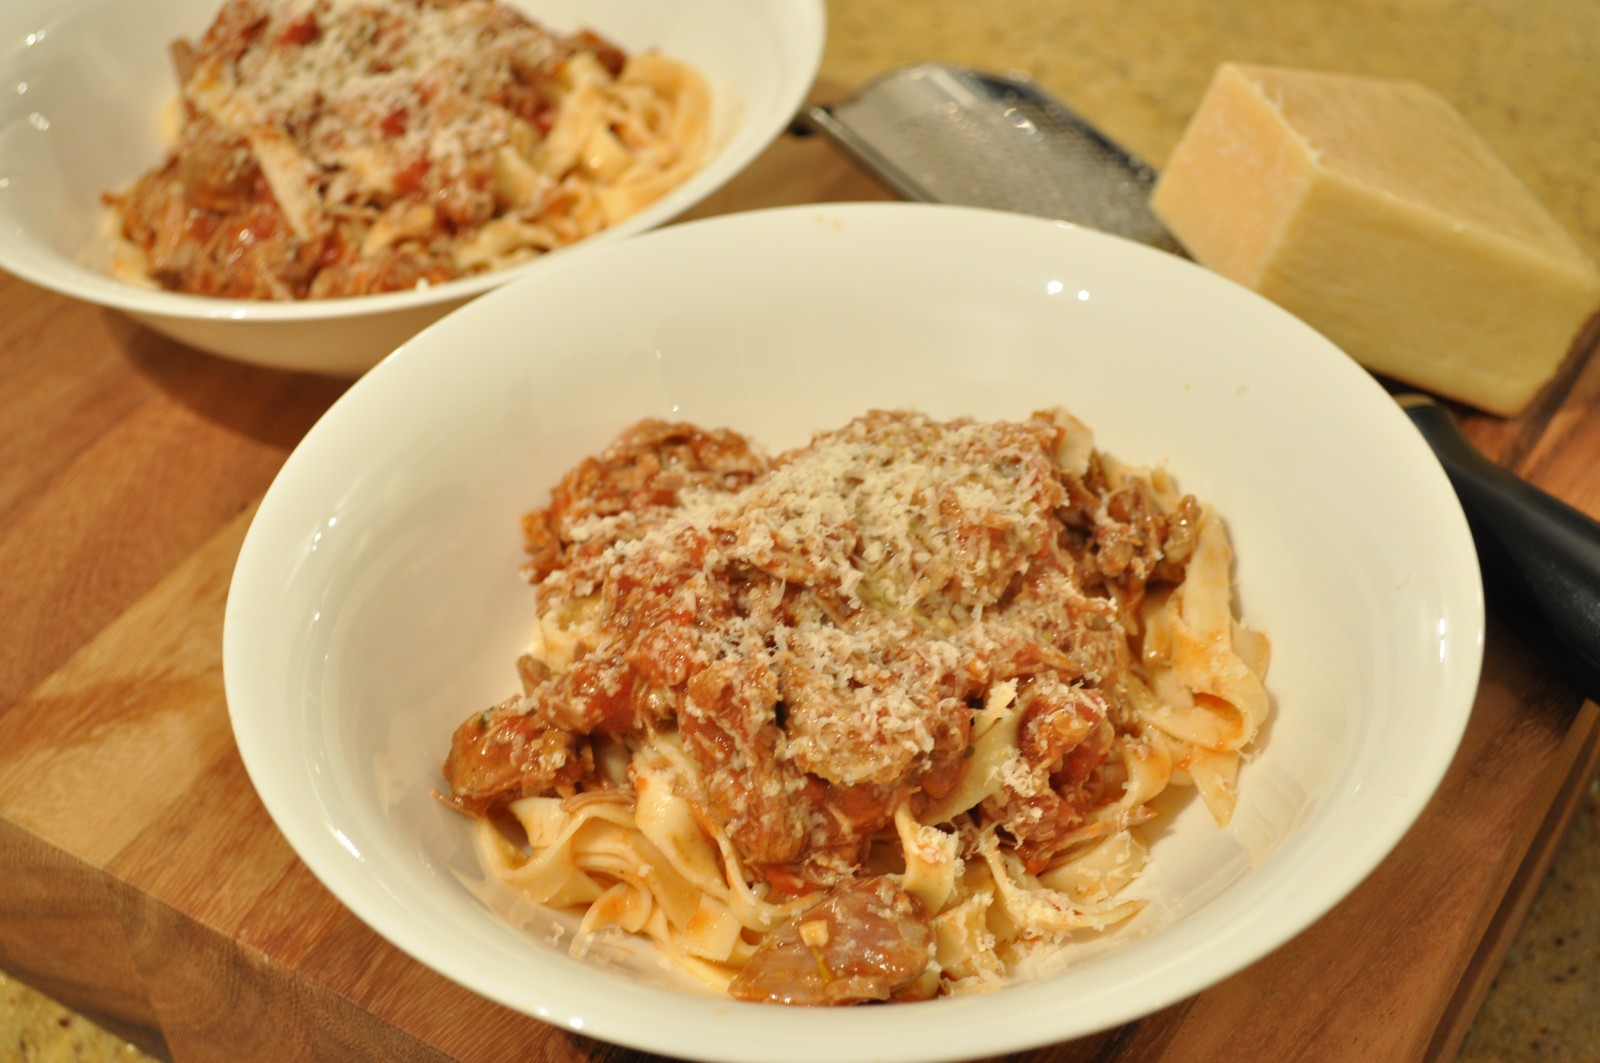 Lamb ragu on homemade pasta